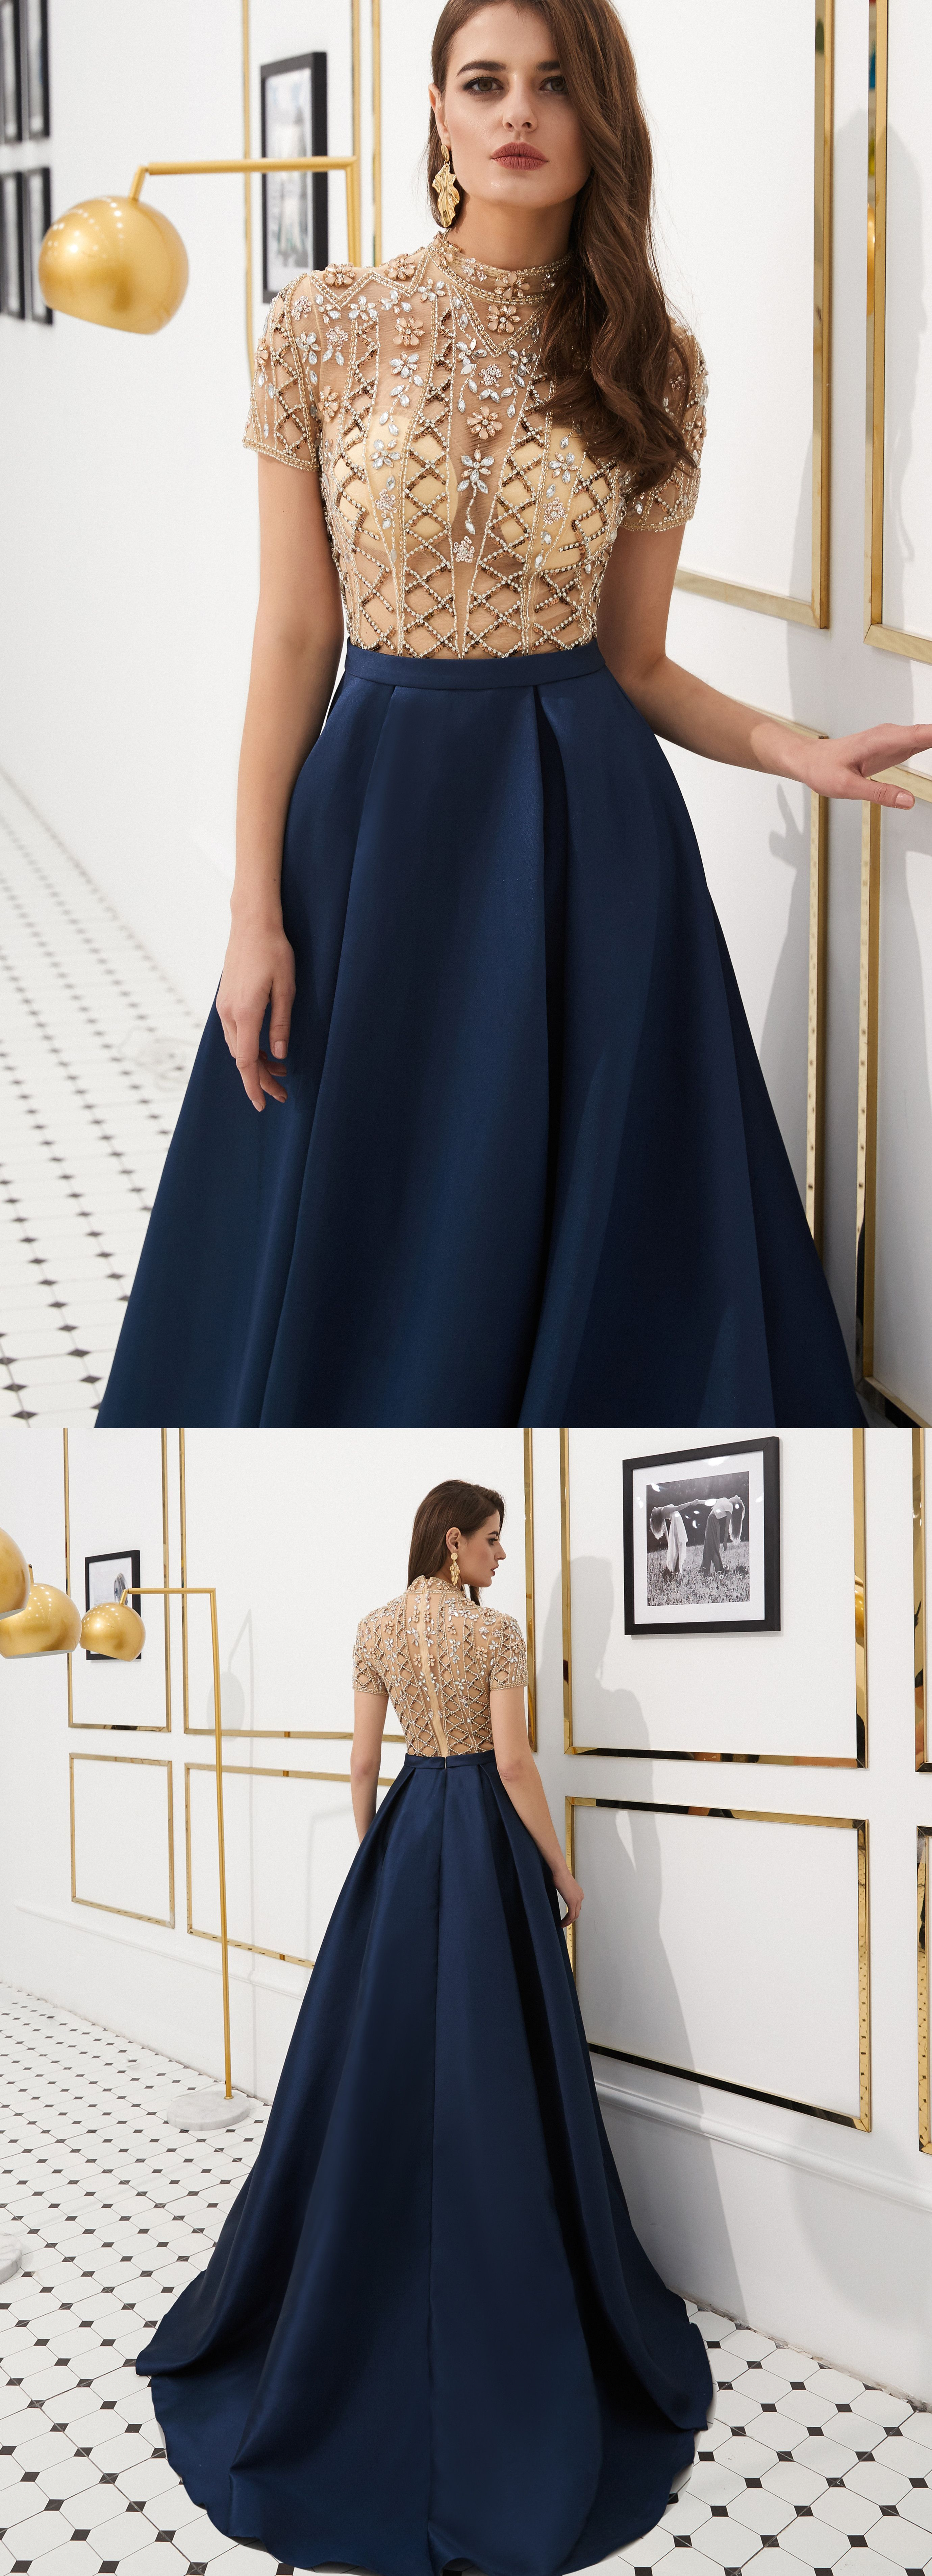 luxurious #delivery #hanmade #dresses #navy #blue #prom